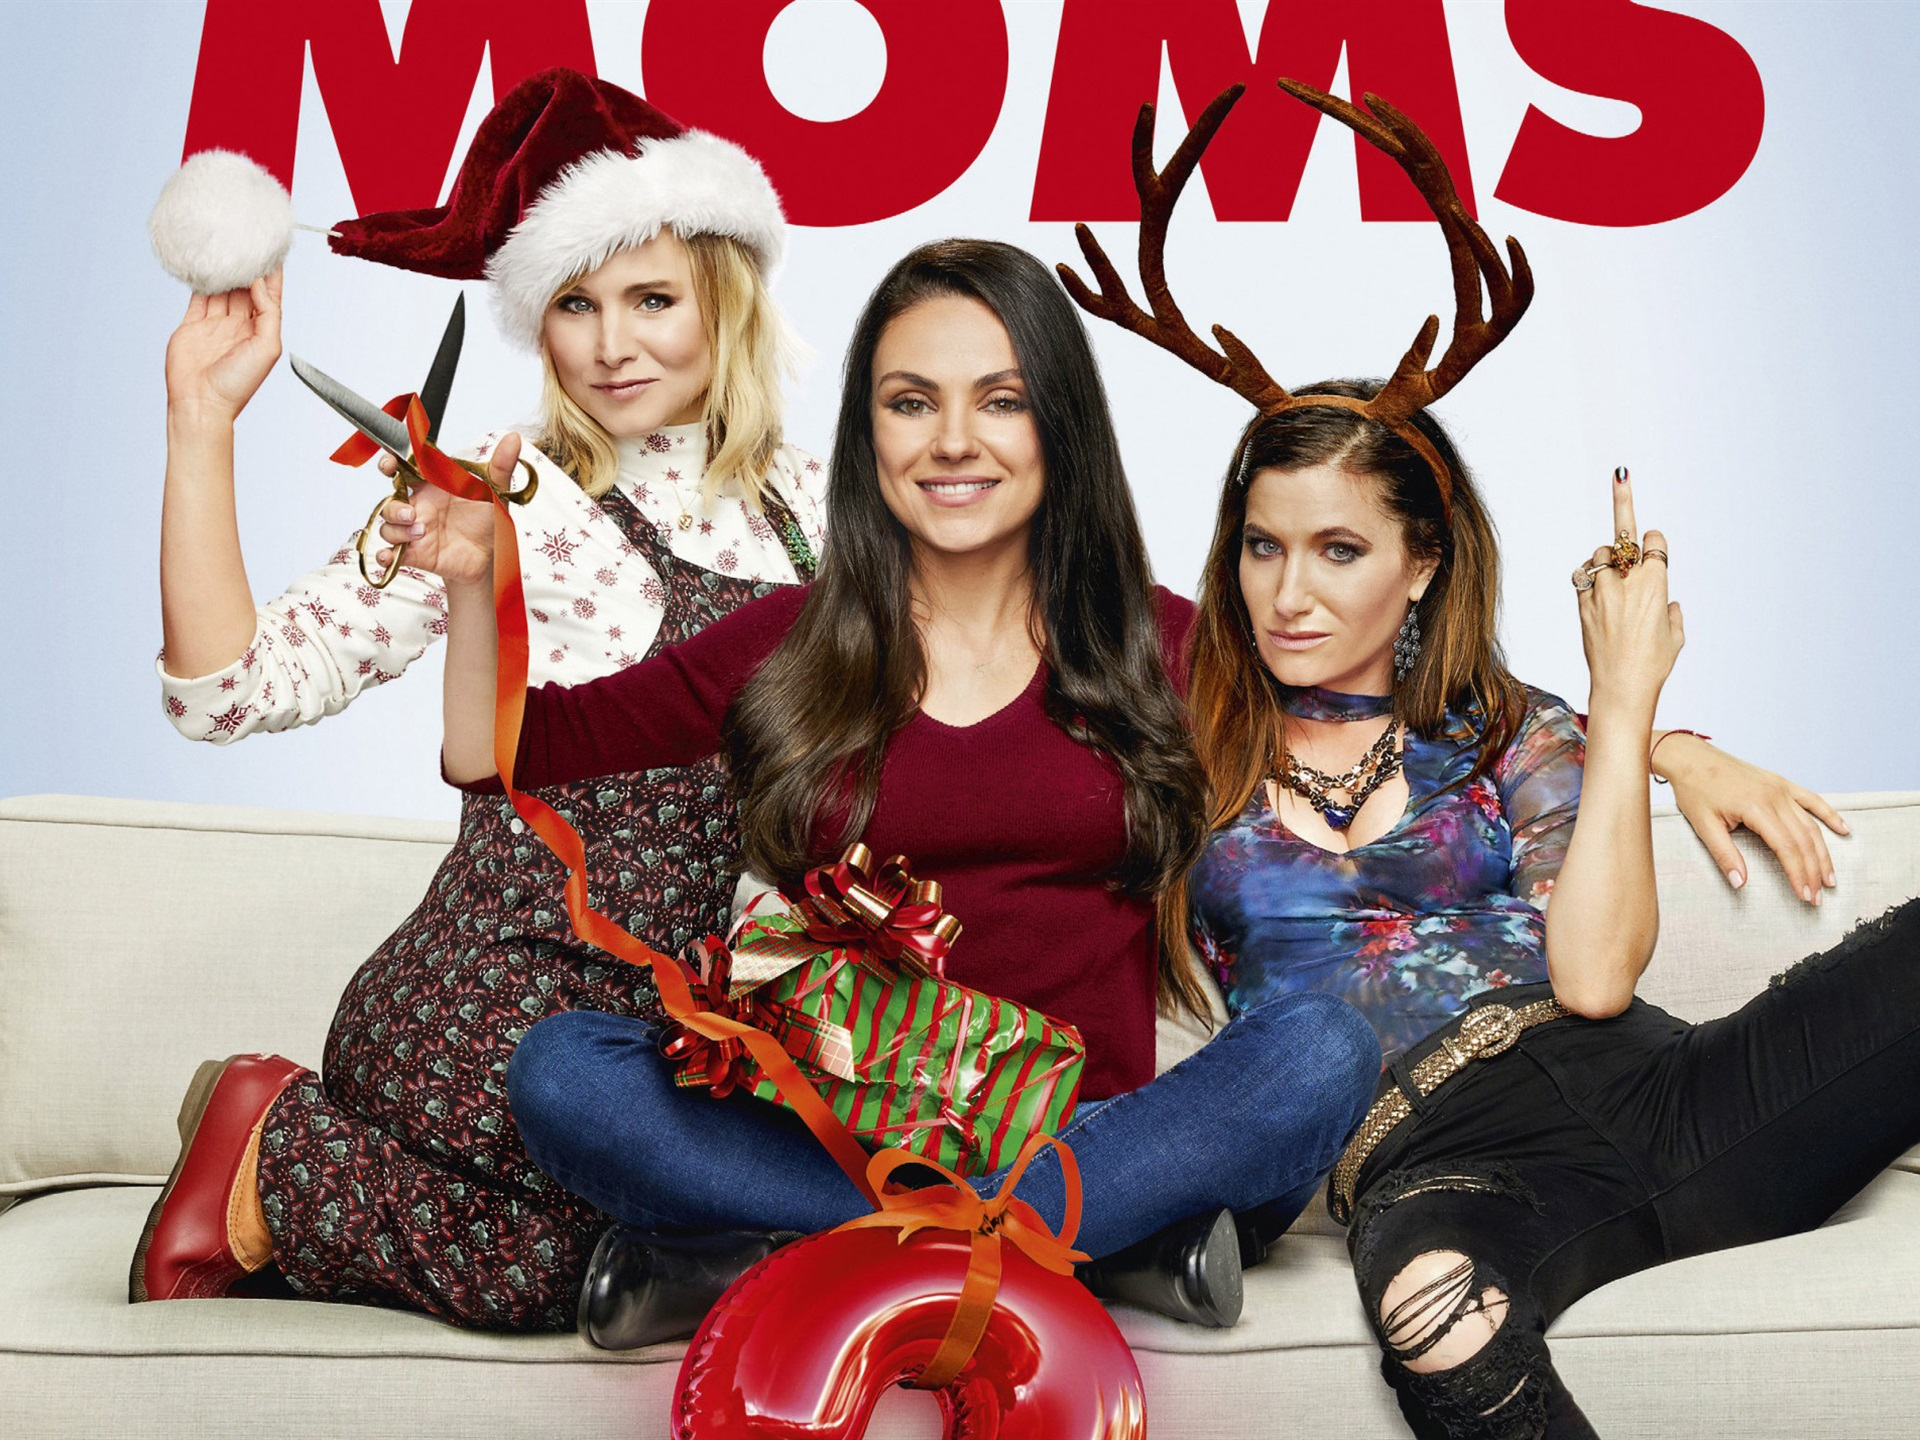 A Bad Moms Christmas 2017.Wallpaper A Bad Moms Christmas 2017 1920x1440 Hd Picture Image